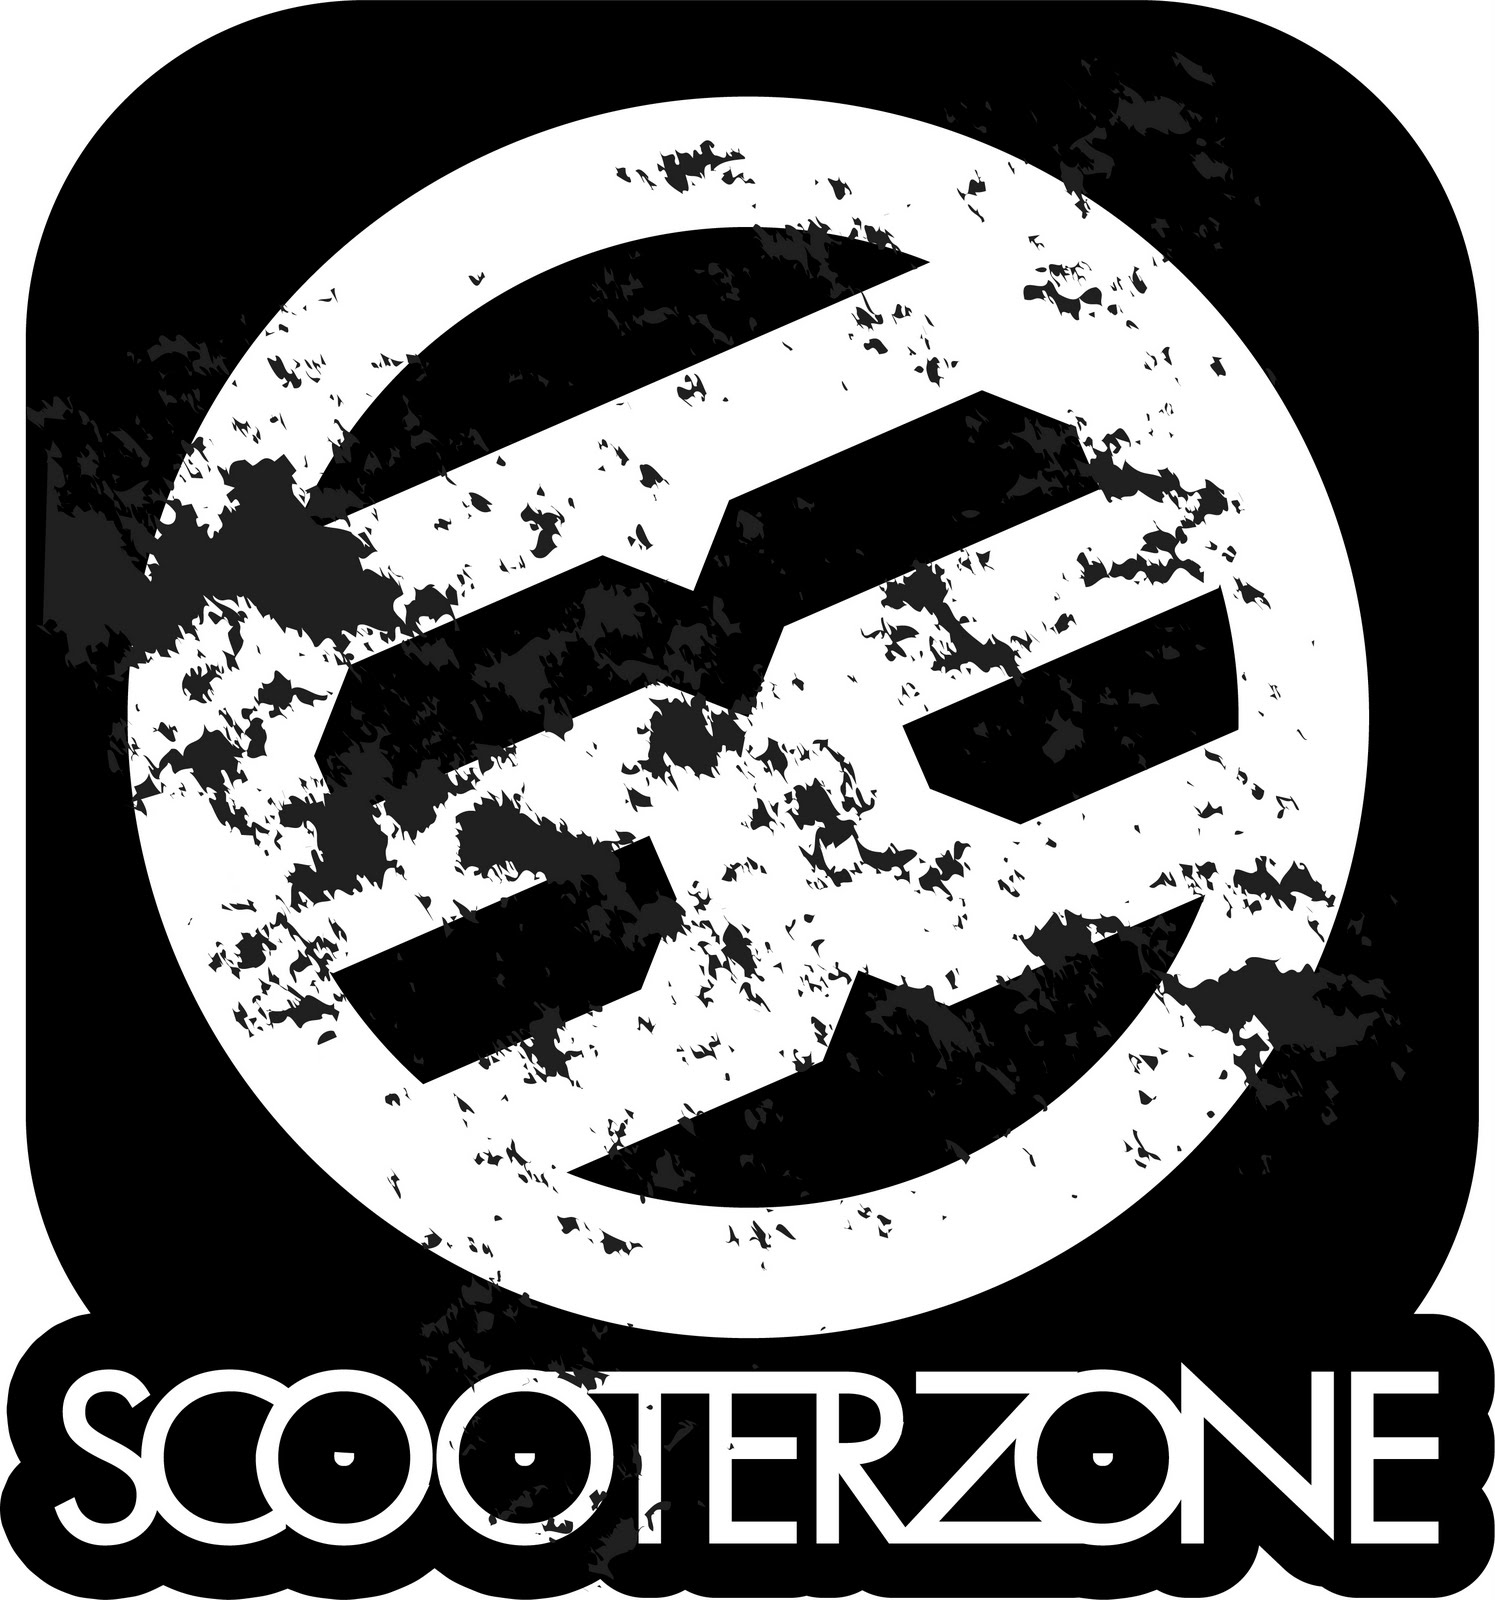 Inside scooters scooter zone hic viper bars website video scooter zone hic viper bars website video buycottarizona Choice Image